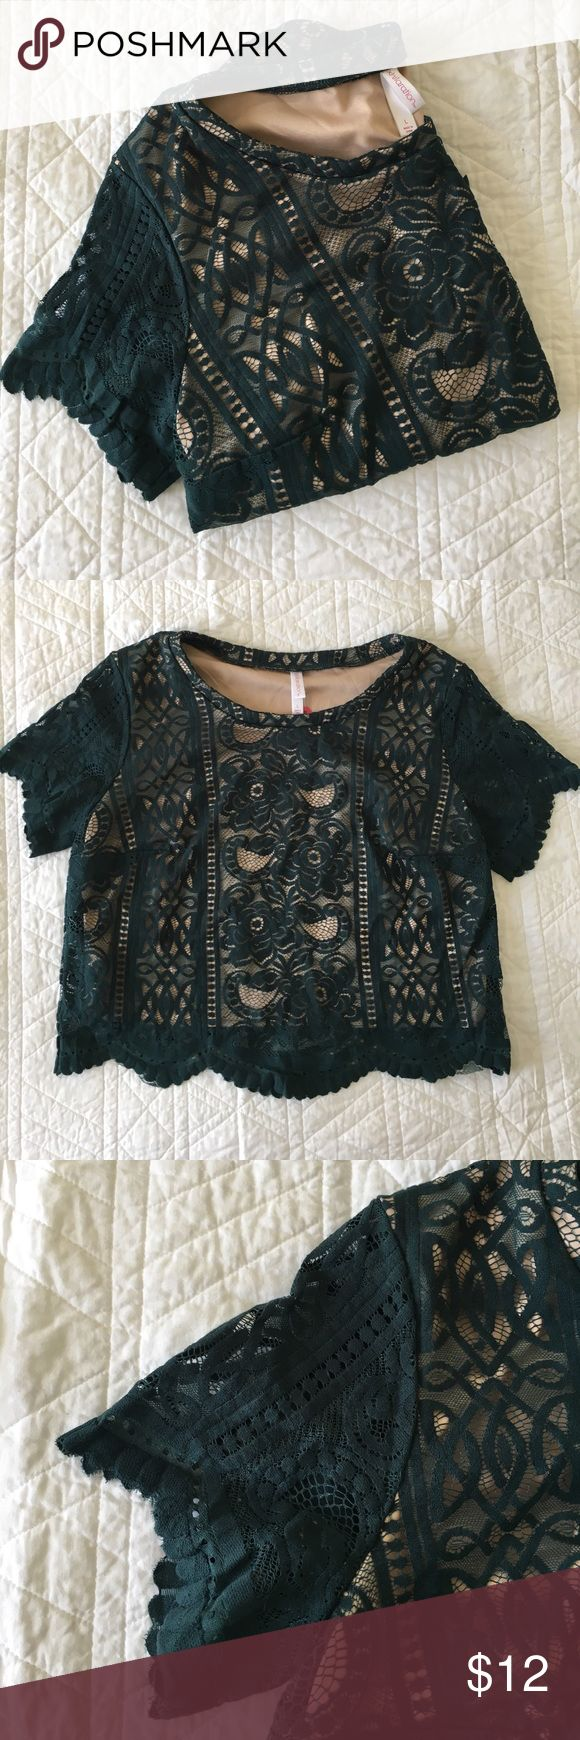 """Emerald Green Lace Crop Top Beautiful dark green Lace crop top with """"nude"""" (nude on me because I'm just tan enough right now to not blind my neighbors anymore. It's more of a peachy color) fabric lining. Top has scallop hem. Purchased to wear with an a-line skirt for a Christmas party and ended up wearing a tacky sweater instead. Xhilaration Tops Crop Tops"""